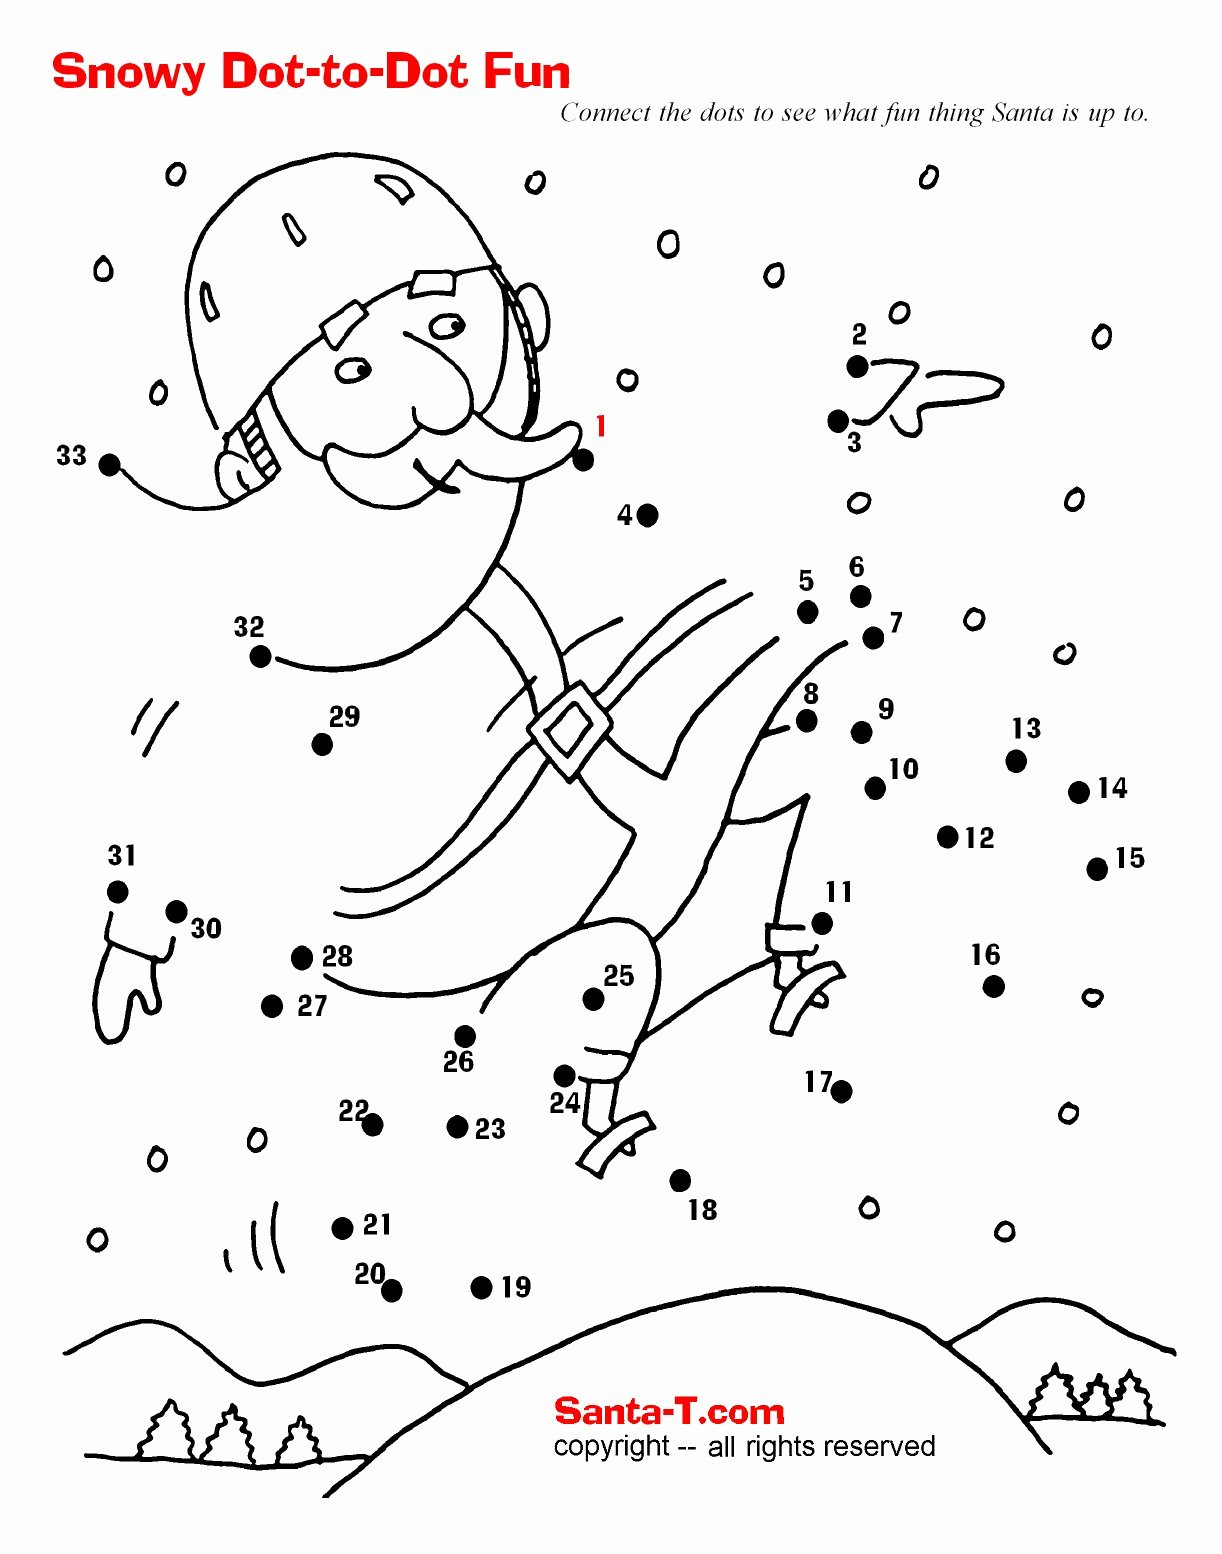 Christmas Connect the Dots Printable Lovely Awesome Connect the Dots Coloring Pages for Teens